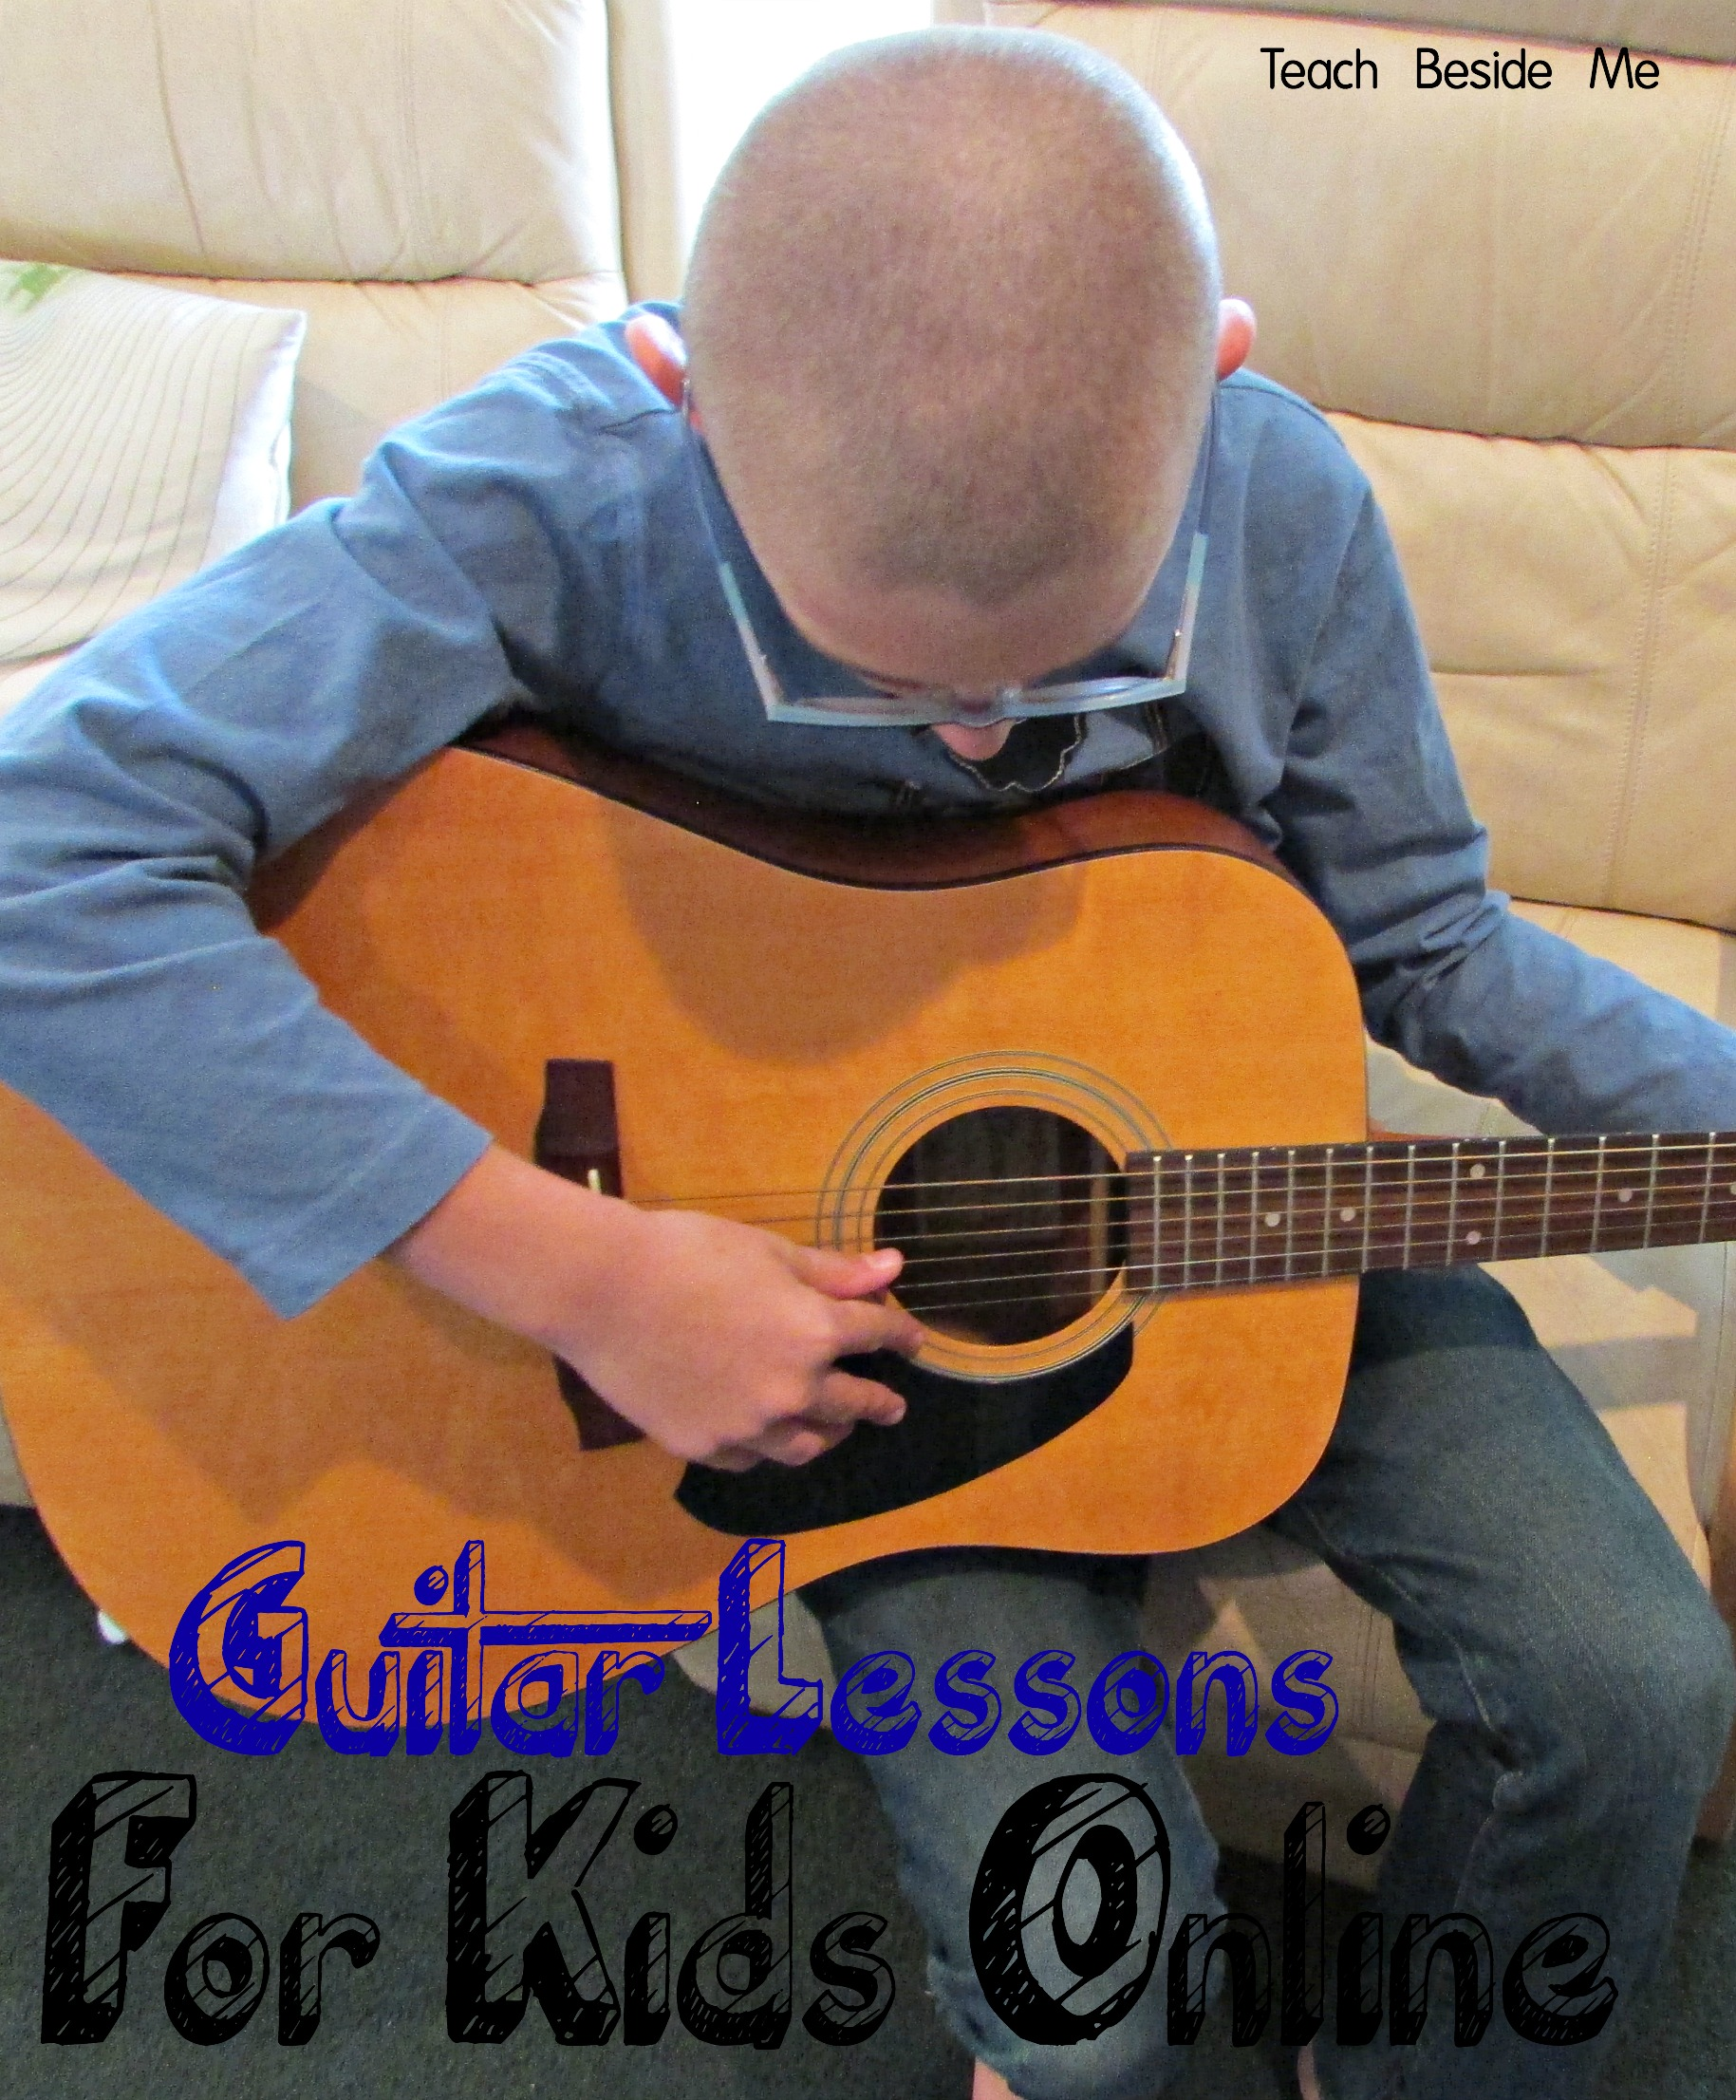 Guitar lessons for kids- online through Skype, or a video course